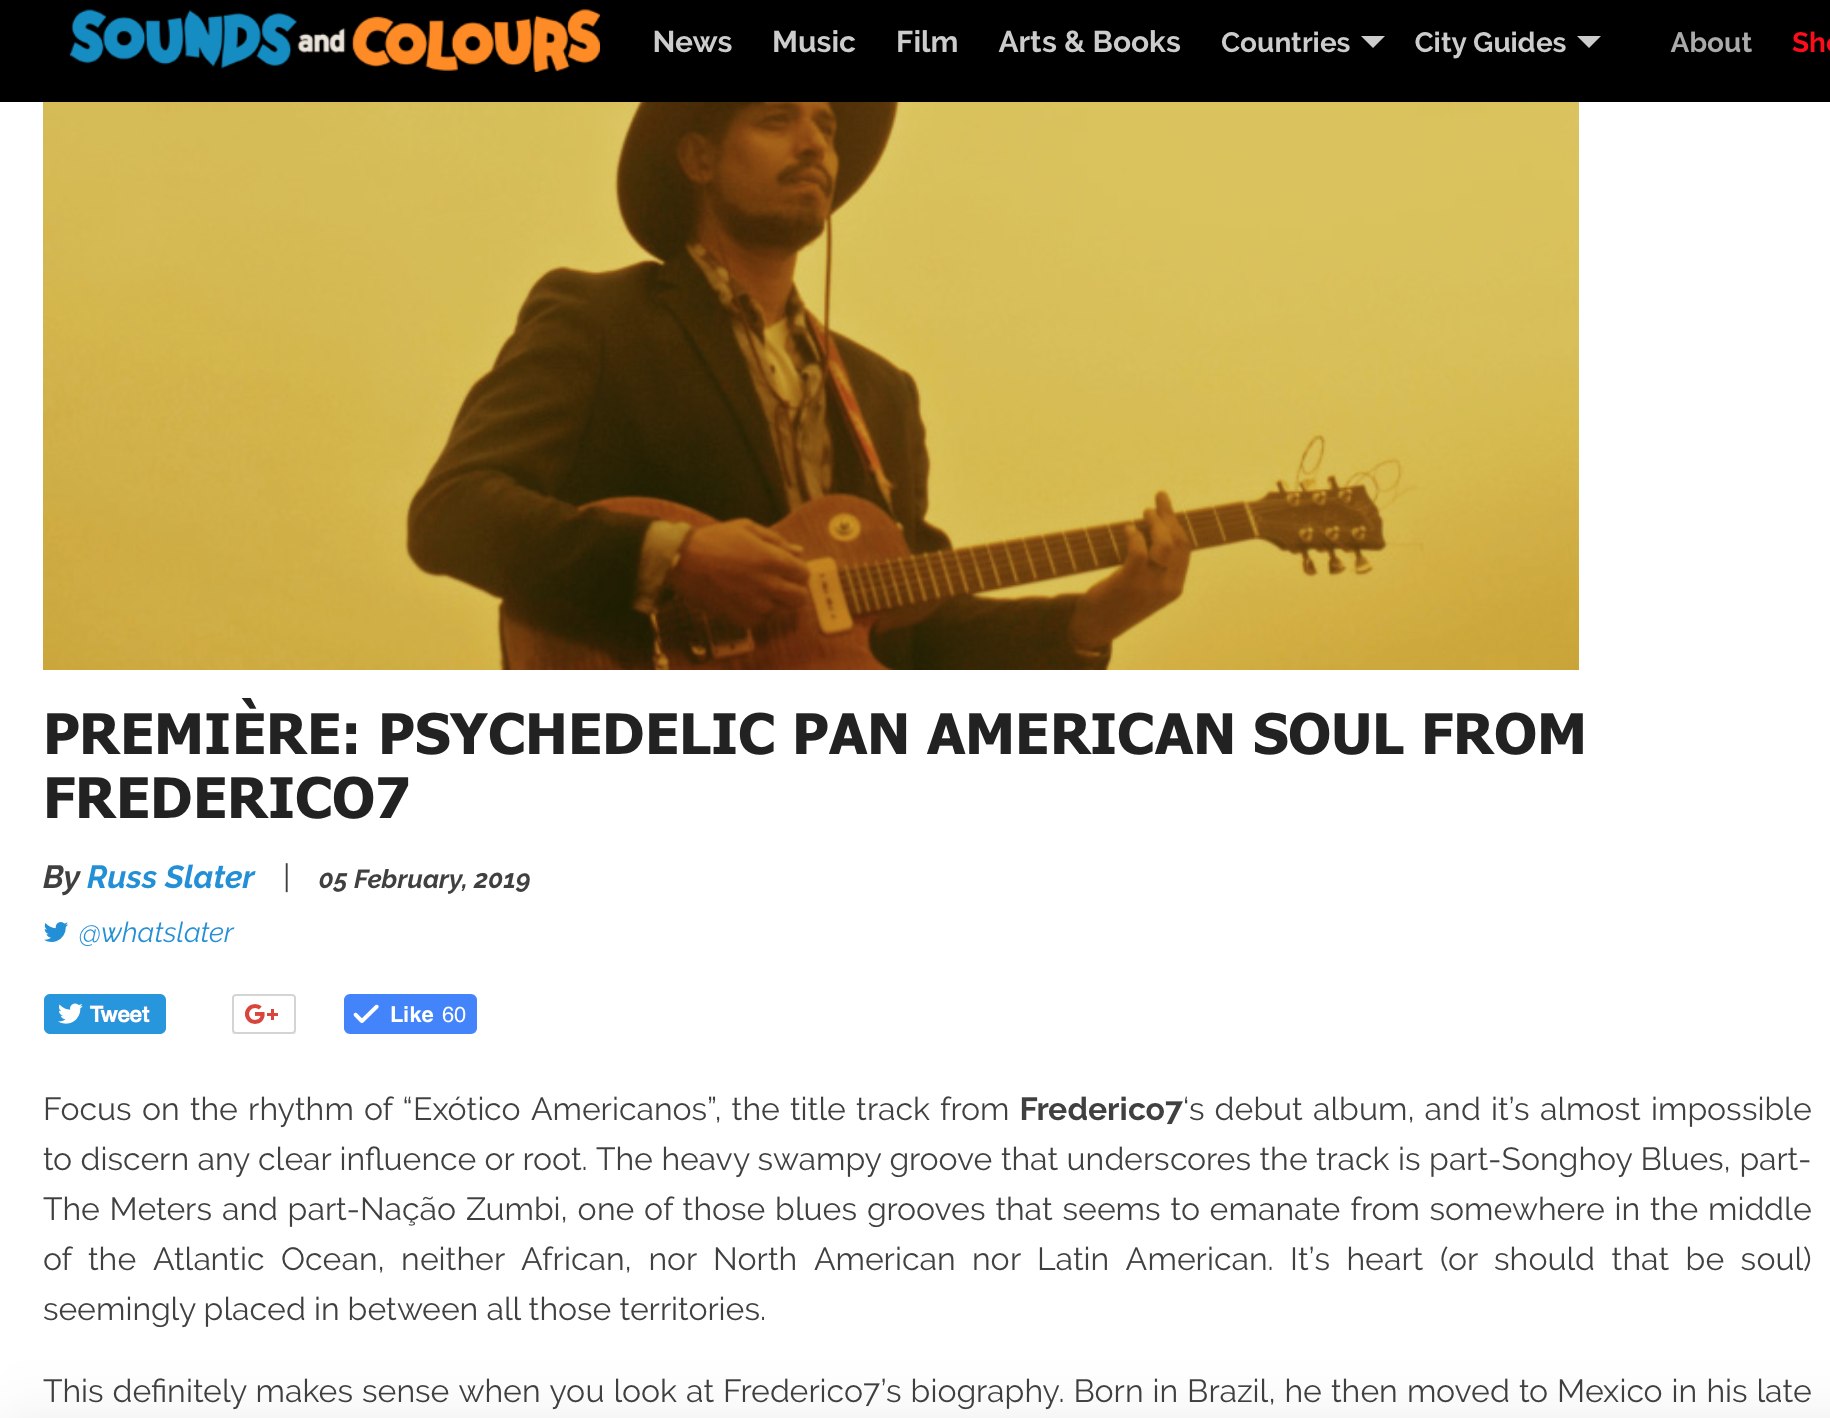 """Sounds and Colours on the Title Track… - """"The heavy swampy groove that underscores the track is part-Songhoy Blues, part-The Meters and part-Nação Zumbi, one of those blues grooves that seems to emanate from somewhere in the middle of the Atlantic Ocean, neither African, nor North American nor Latin American. It's heart (or should that be soul) seemingly placed in between all those territories."""""""